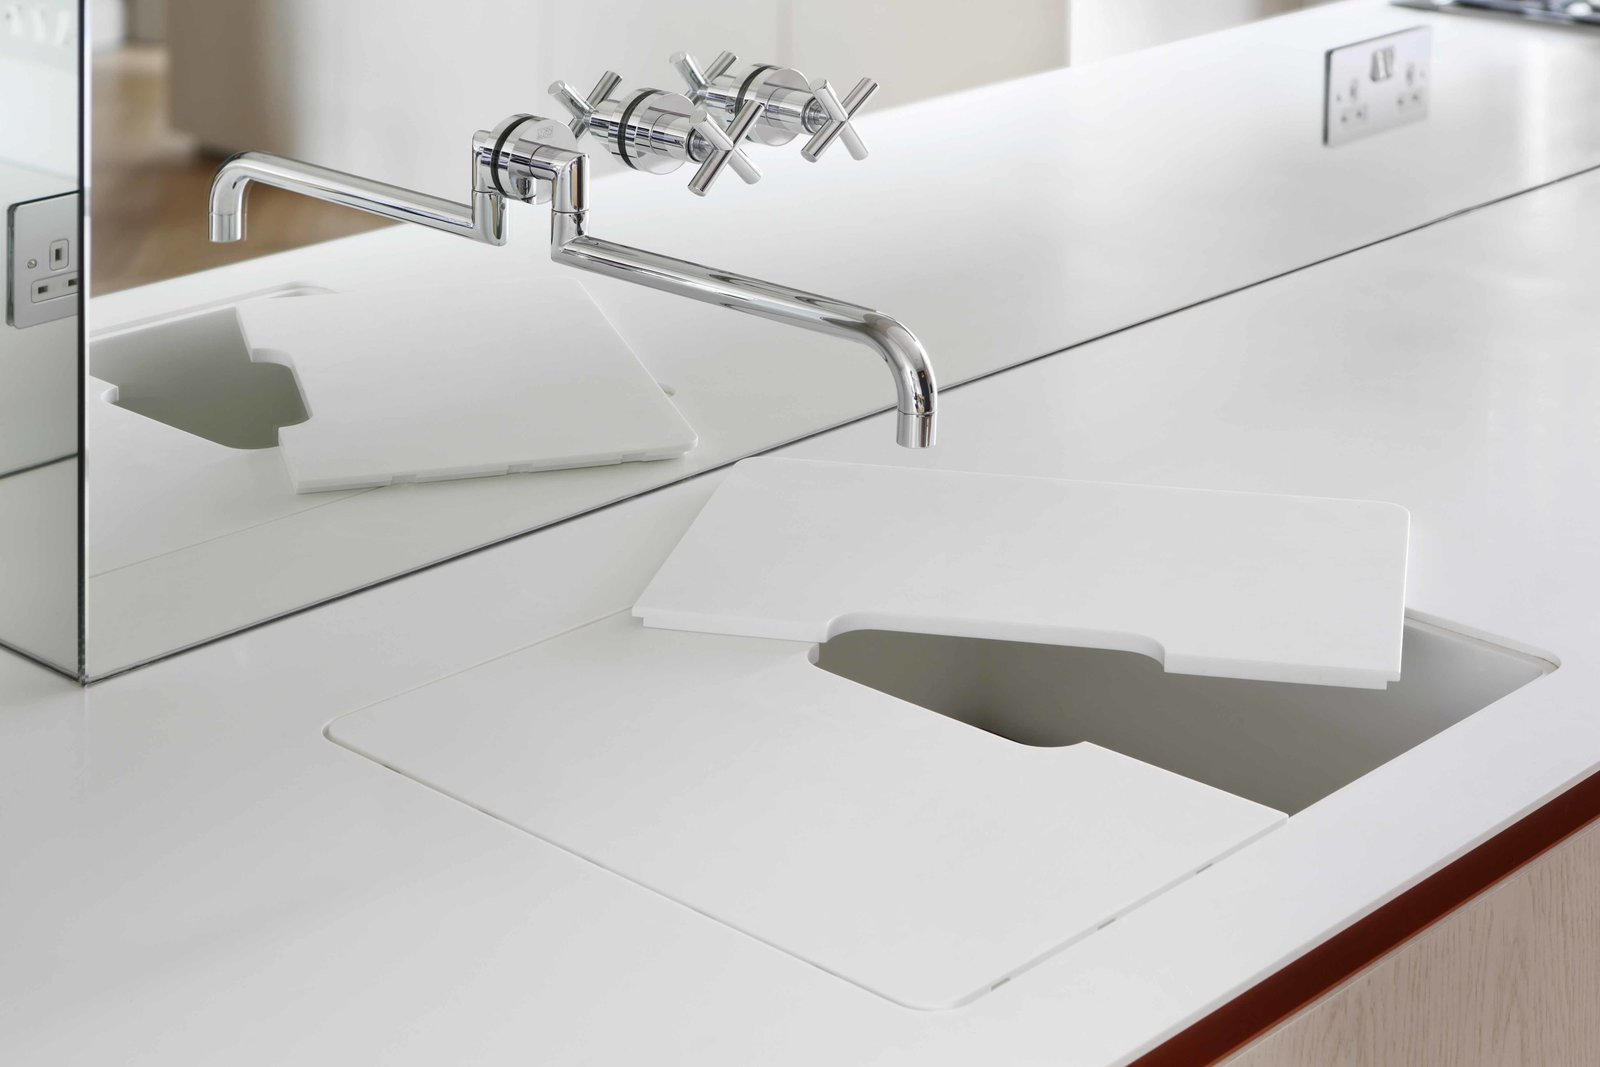 A Dornbracht tap sits above a custom-built glacier white Corian countertop and sink. The sink is covered by a removable cutting board that can be kept in place for an added work surface, or removed for dedicated sink use. The cutout in the center allows water from the tap to flow straight through to the custom Corian drainer.